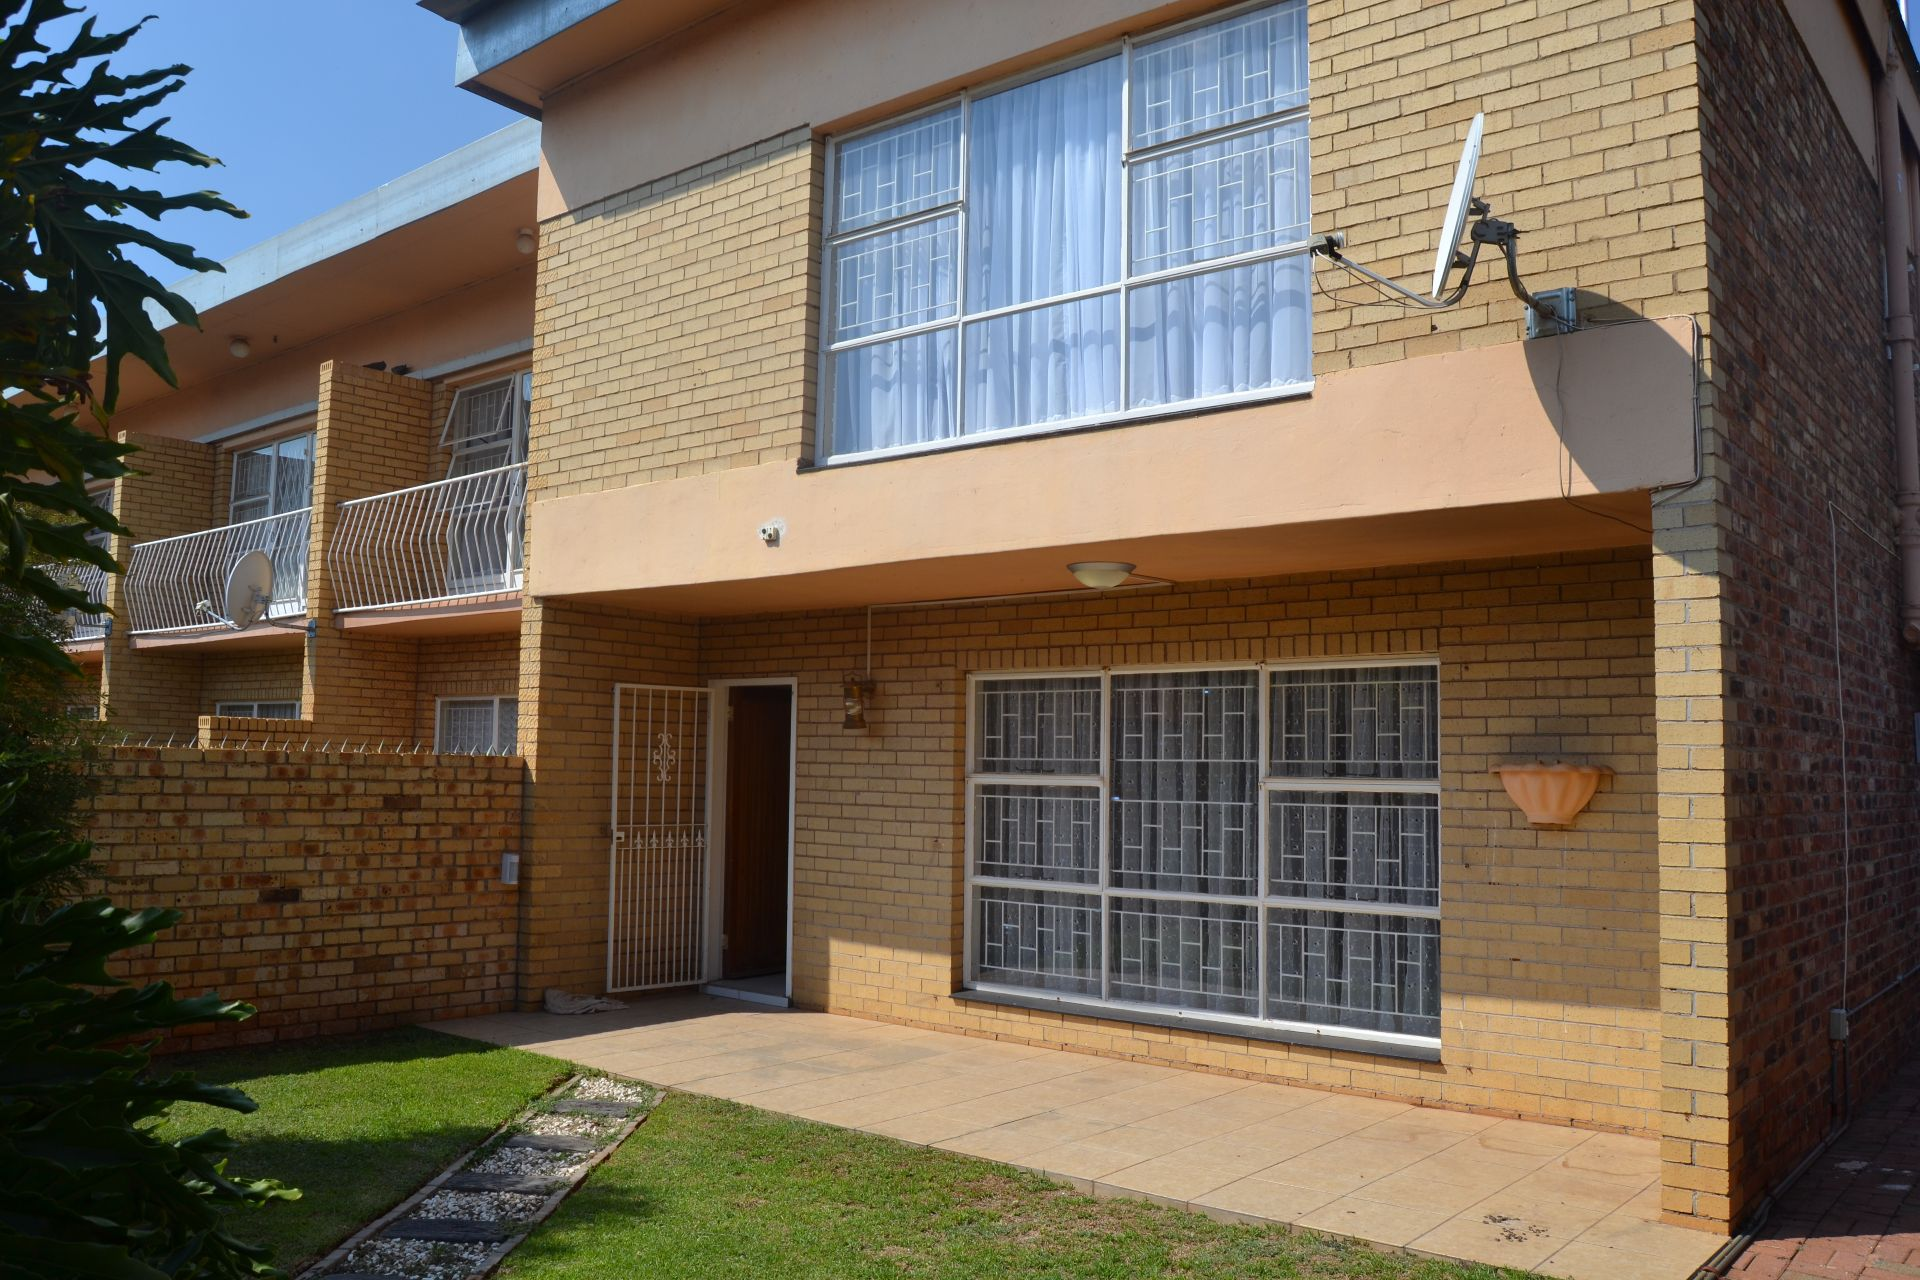 Potchefstroom Central property for sale. Ref No: 13605114. Picture no 1